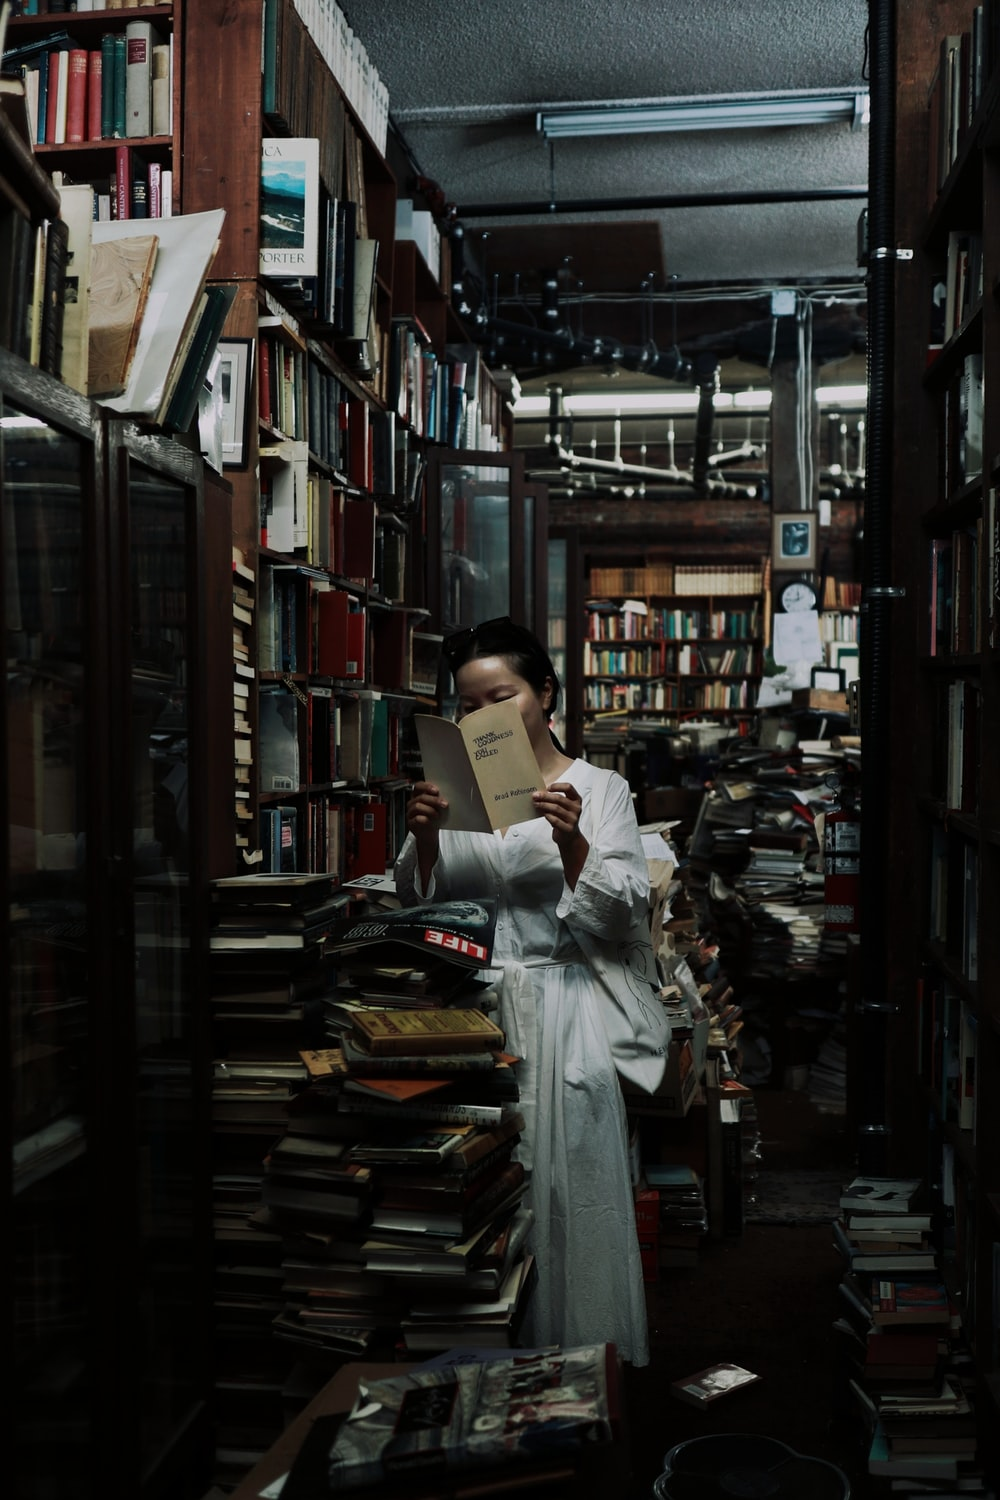 woman in white long sleeve shirt reading book in library